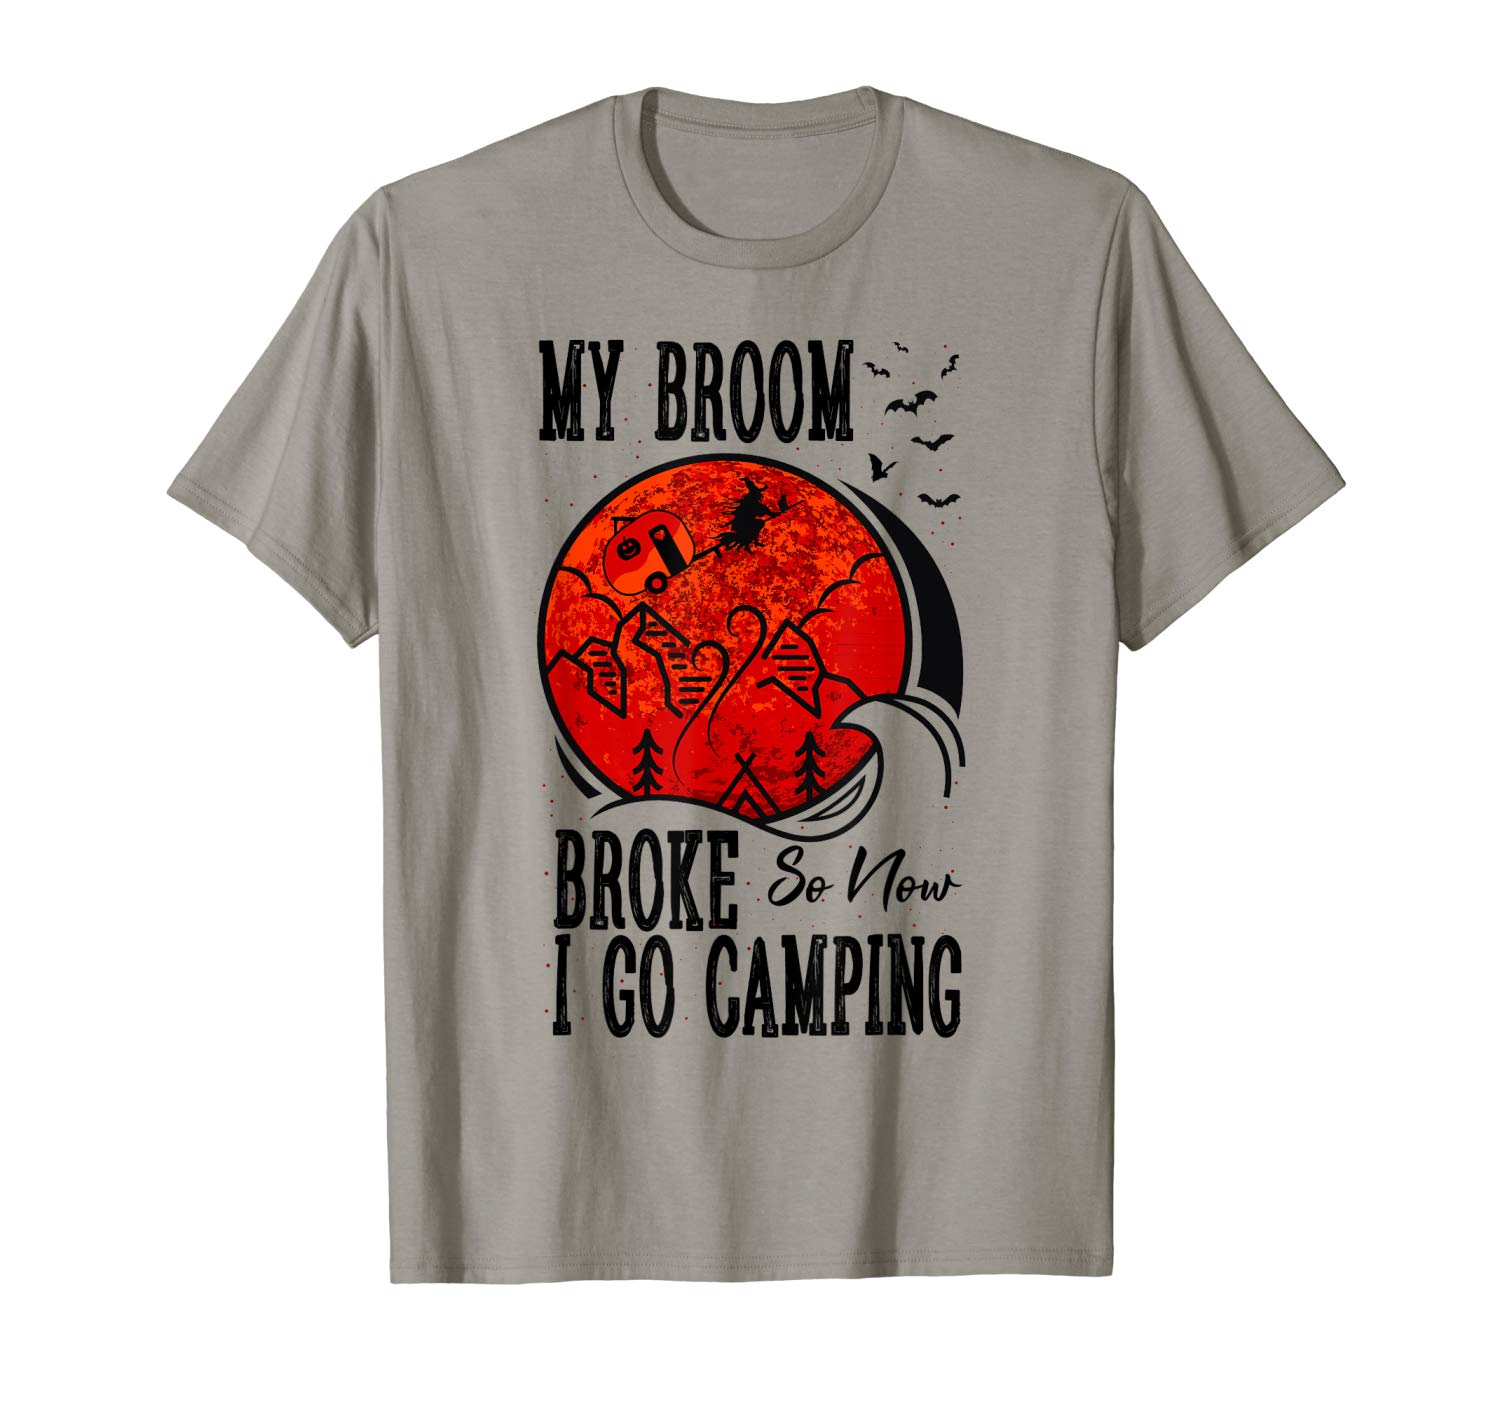 My Broom Broke So Now I Go Camping Lover Funny Camp T Shirt